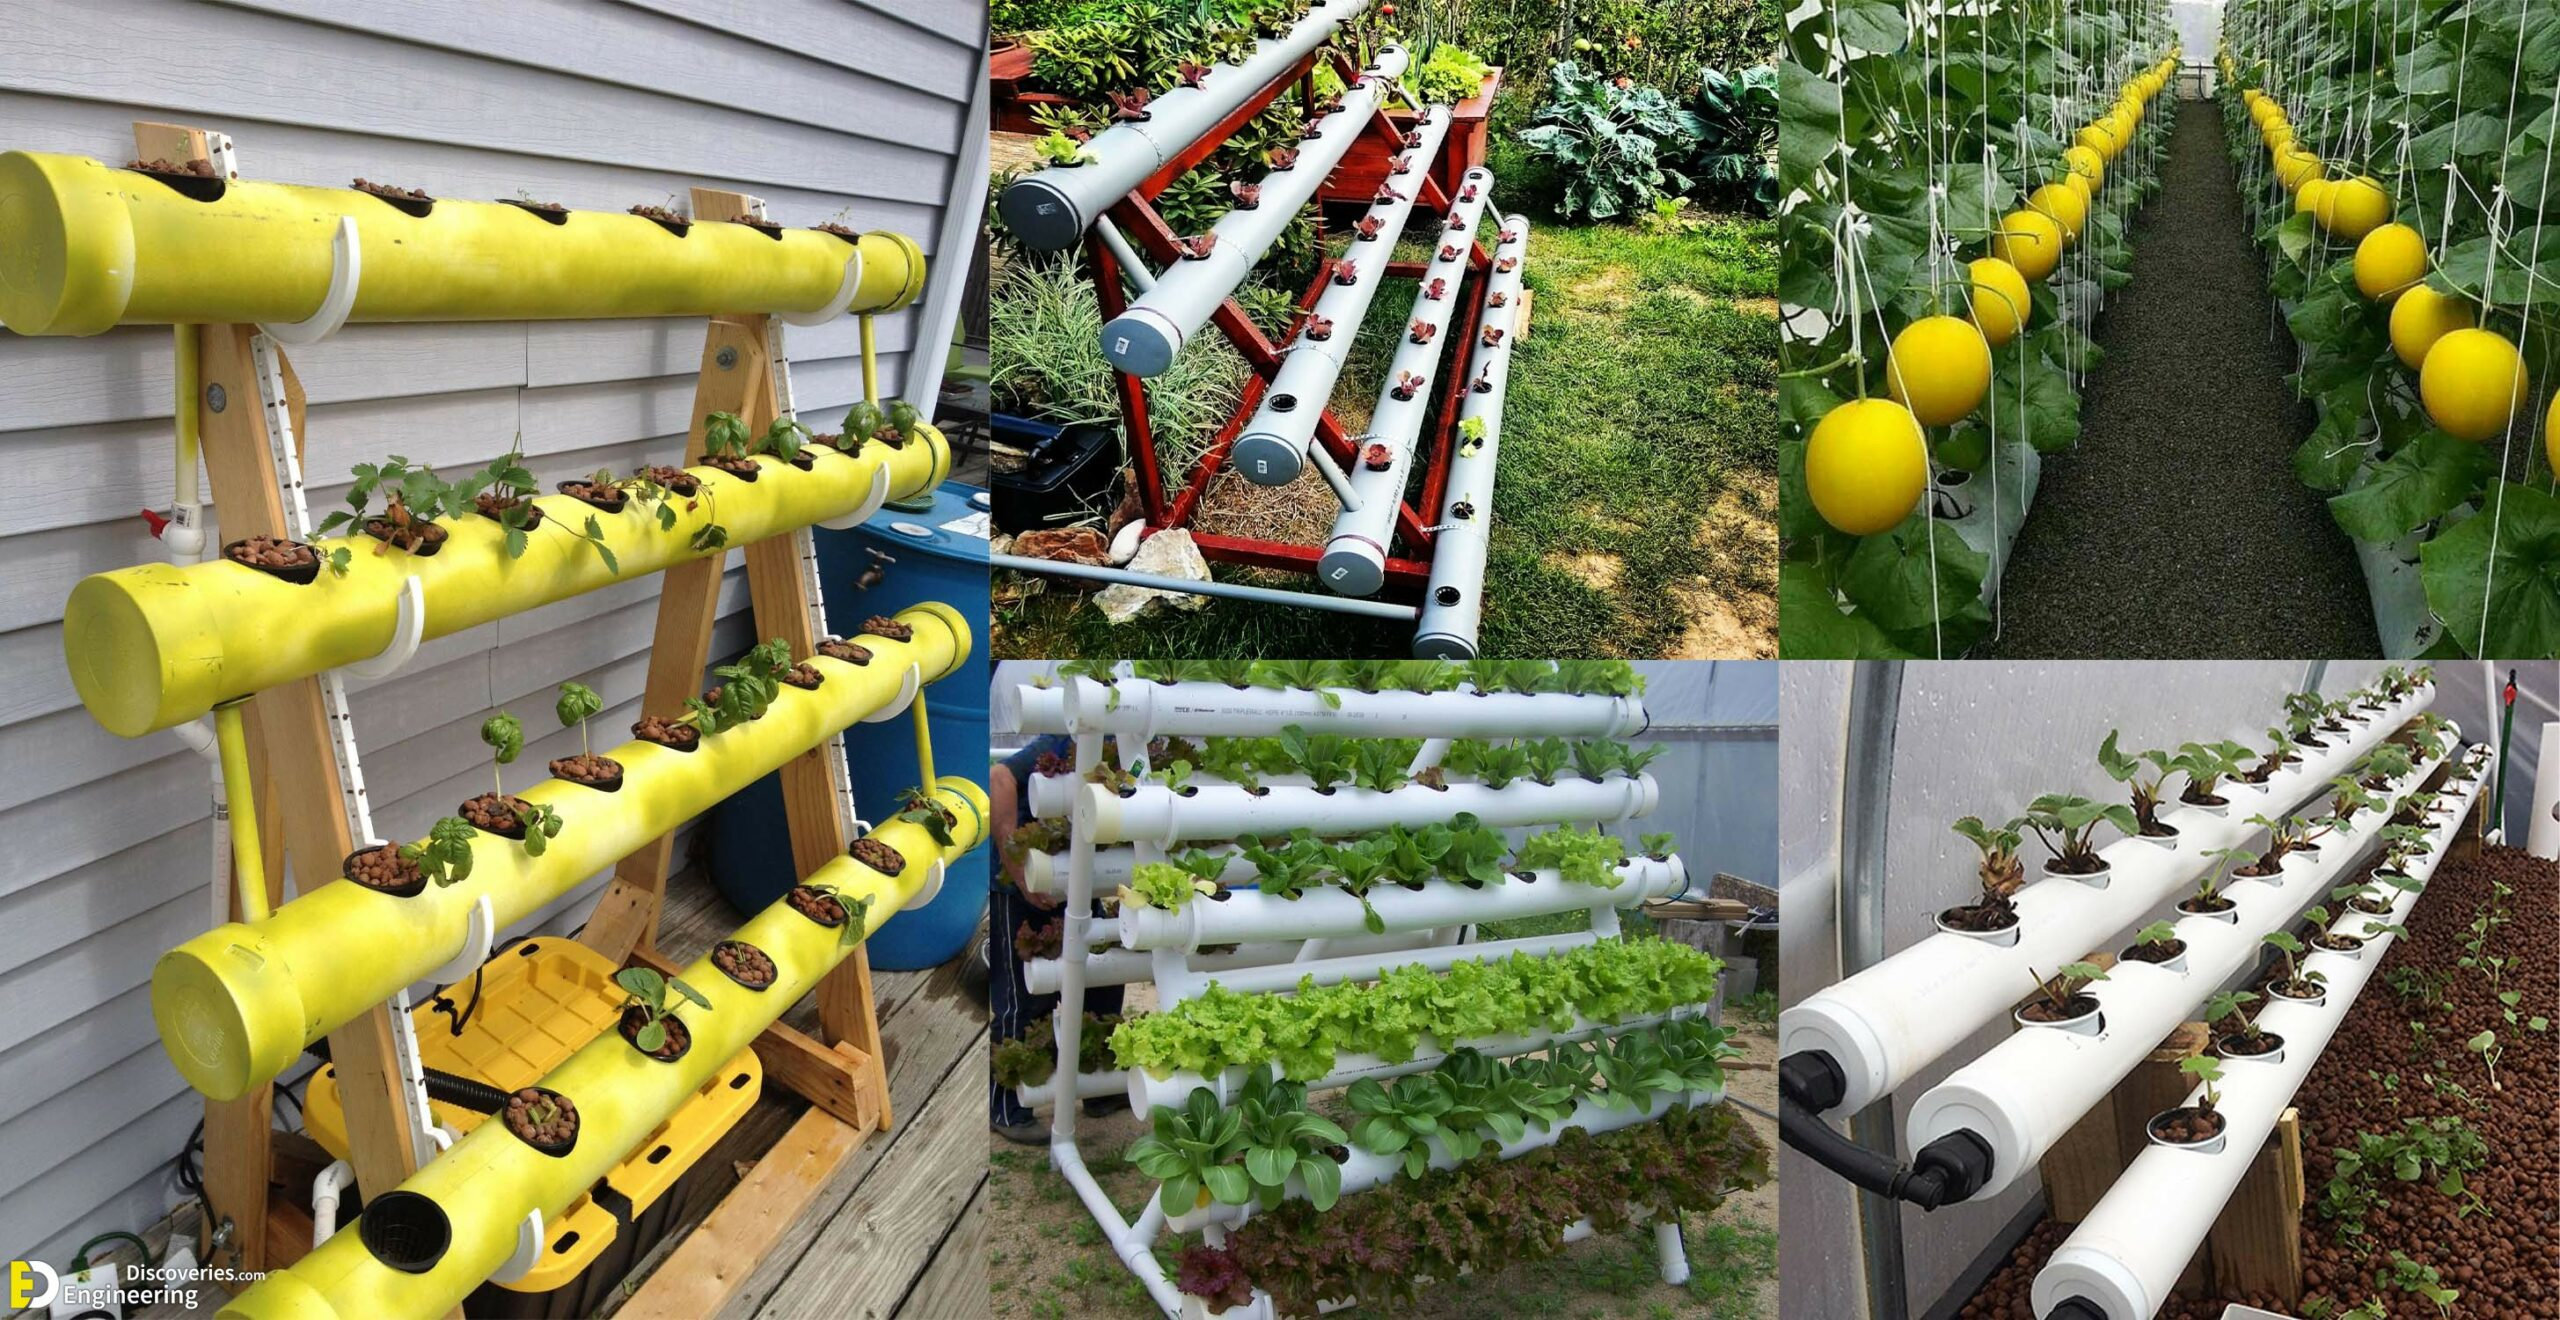 How To Make Home Garden And Fresh Vegetables By Pvc Pipe Engineering Discoveries